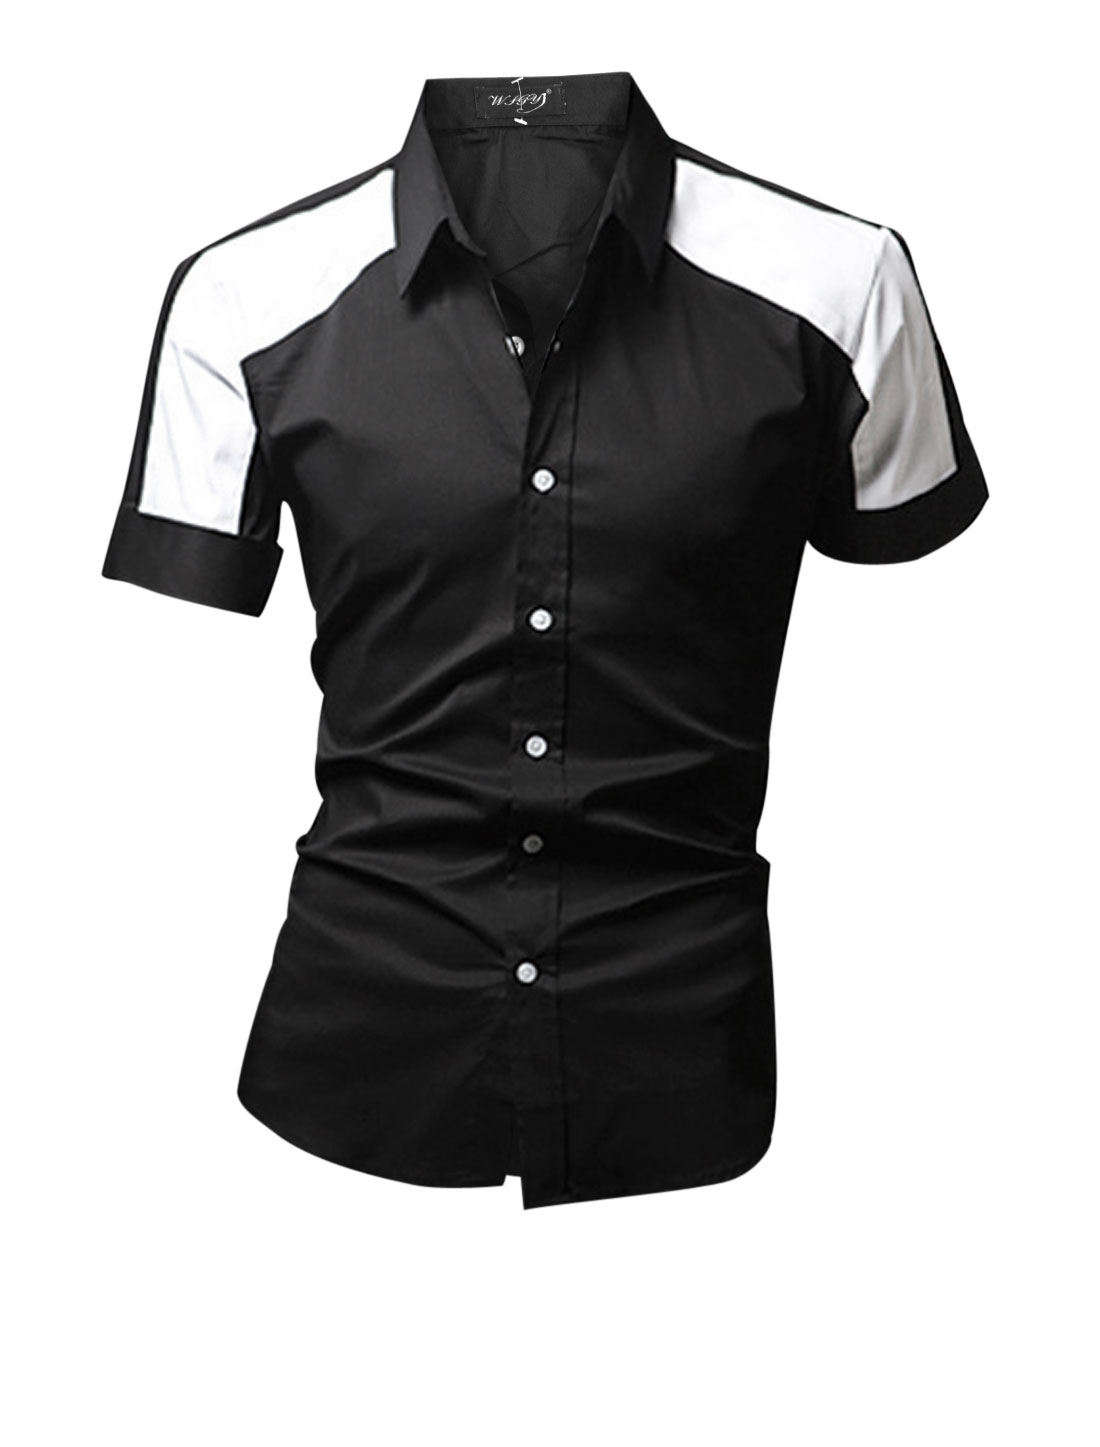 Men Point Collar Single Breasted Color Block Casual Shirt Black M